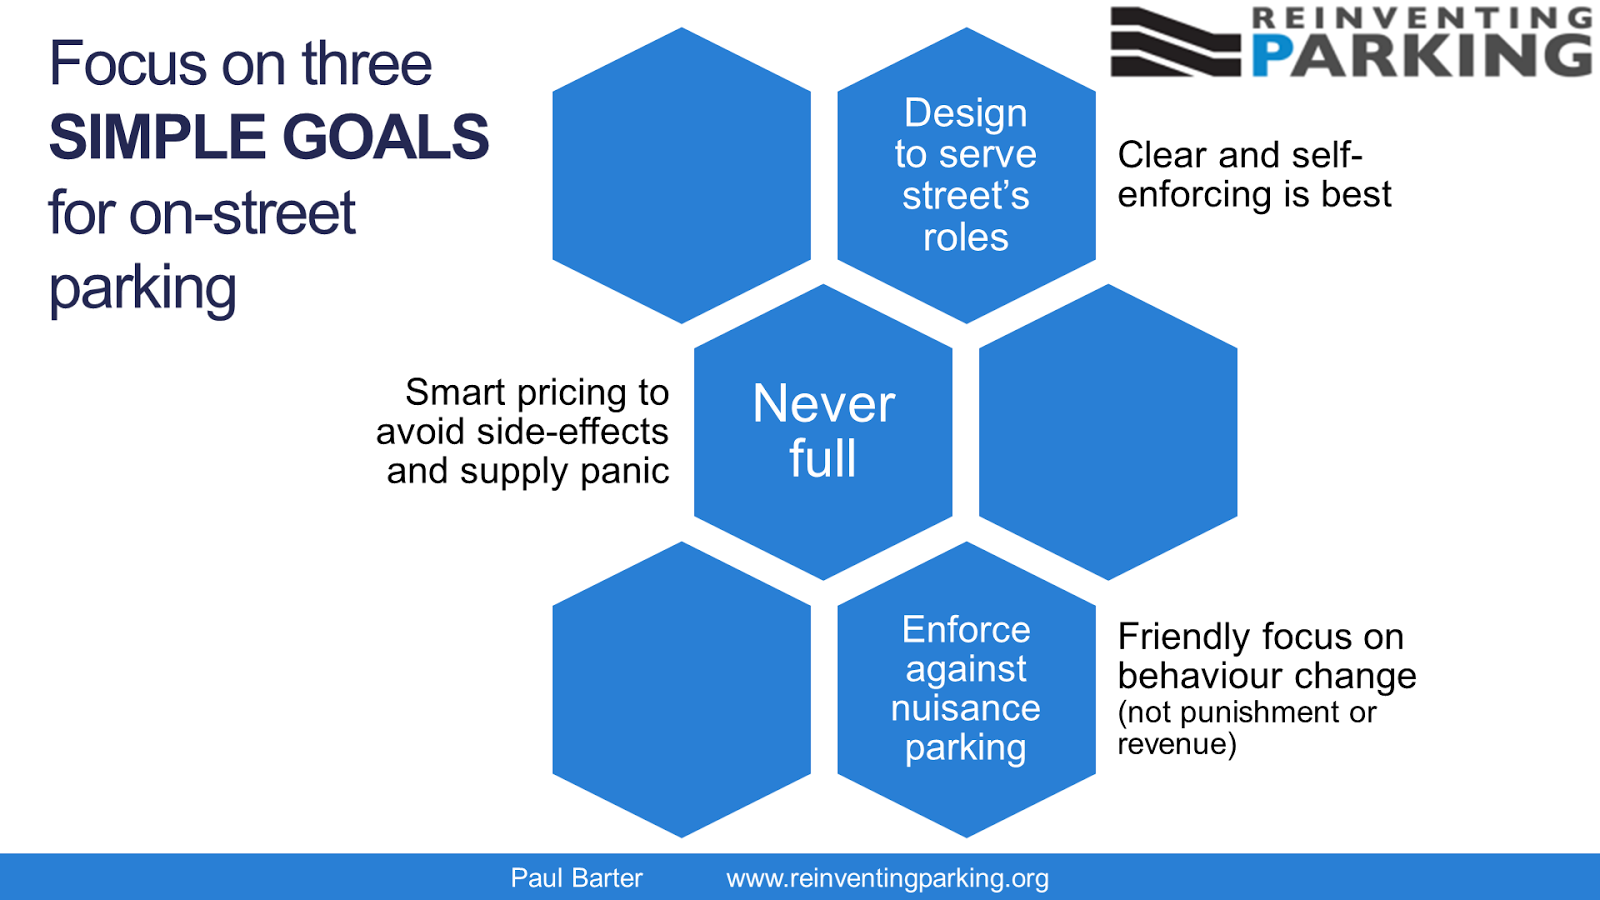 Just THREE key goals for on-street parking management?